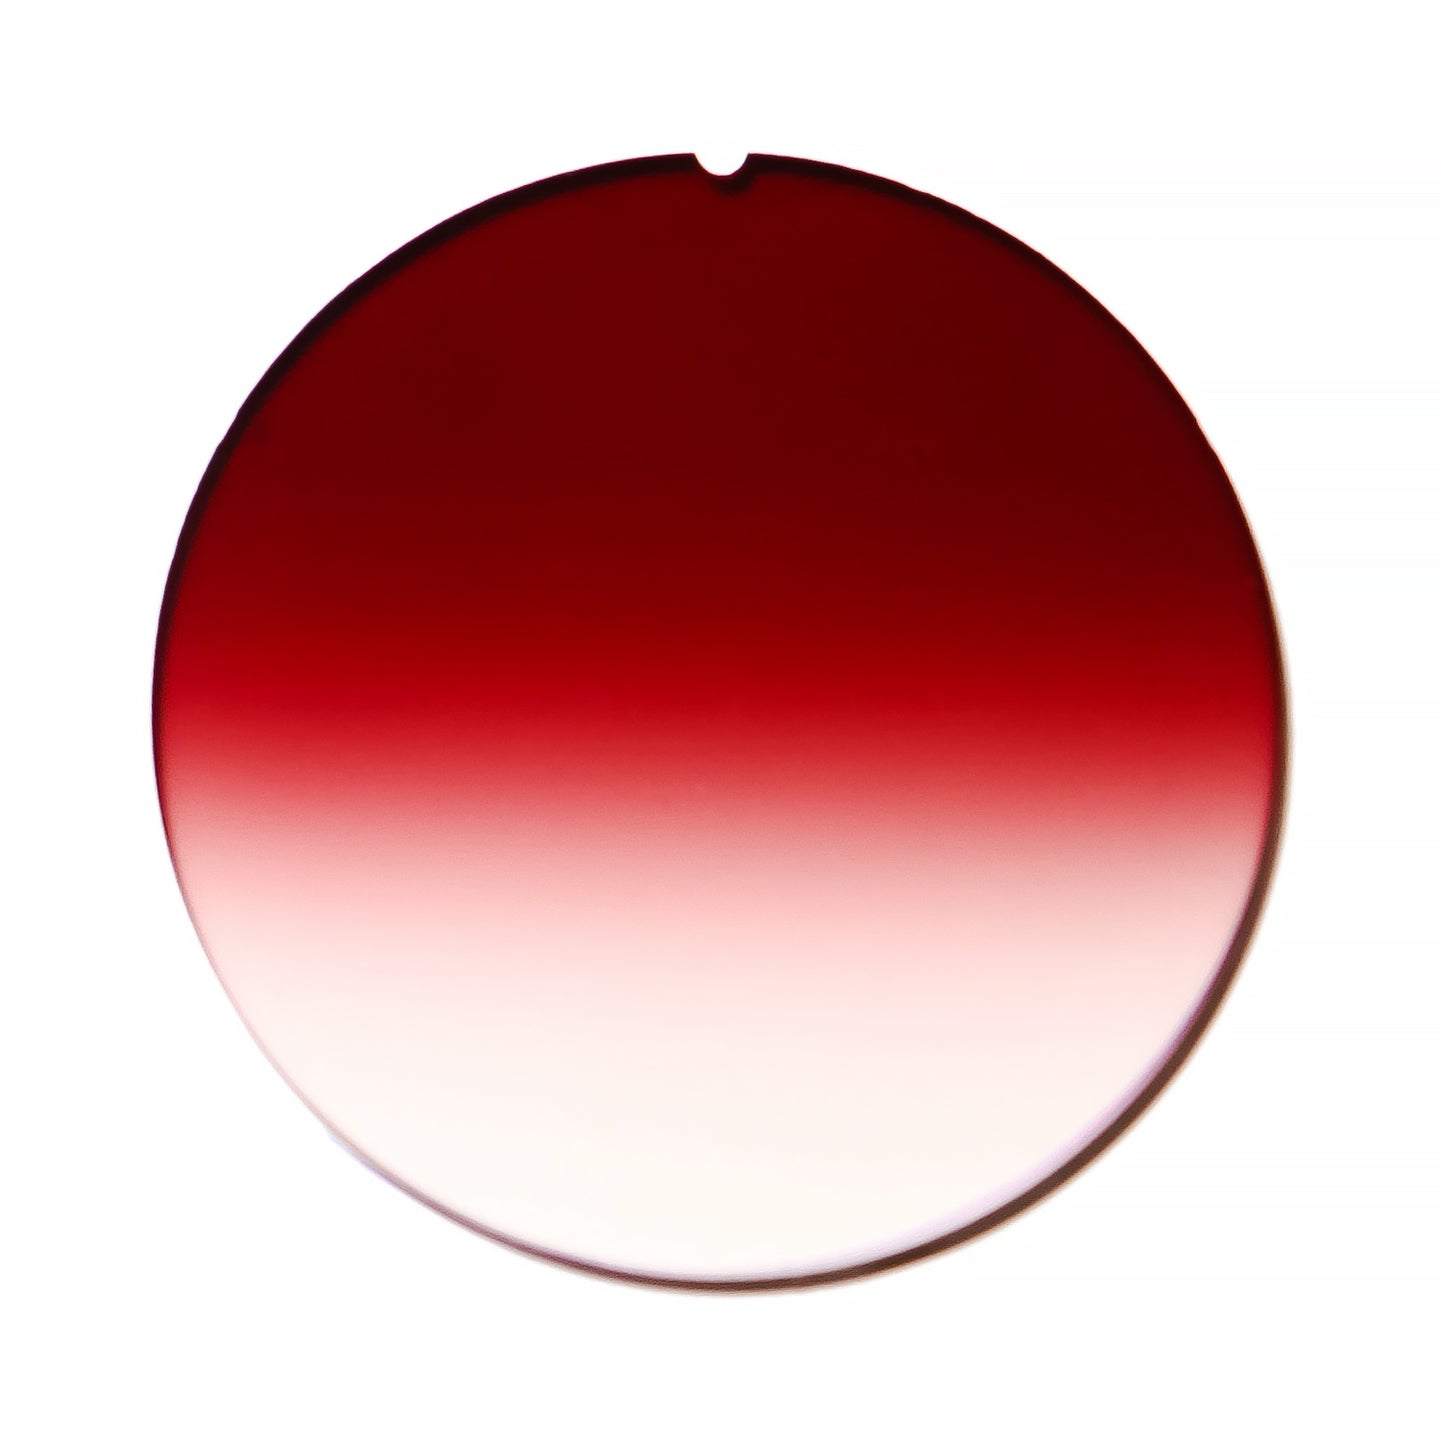 102 - Burgundy Gradient Flat Lens (Base 2)